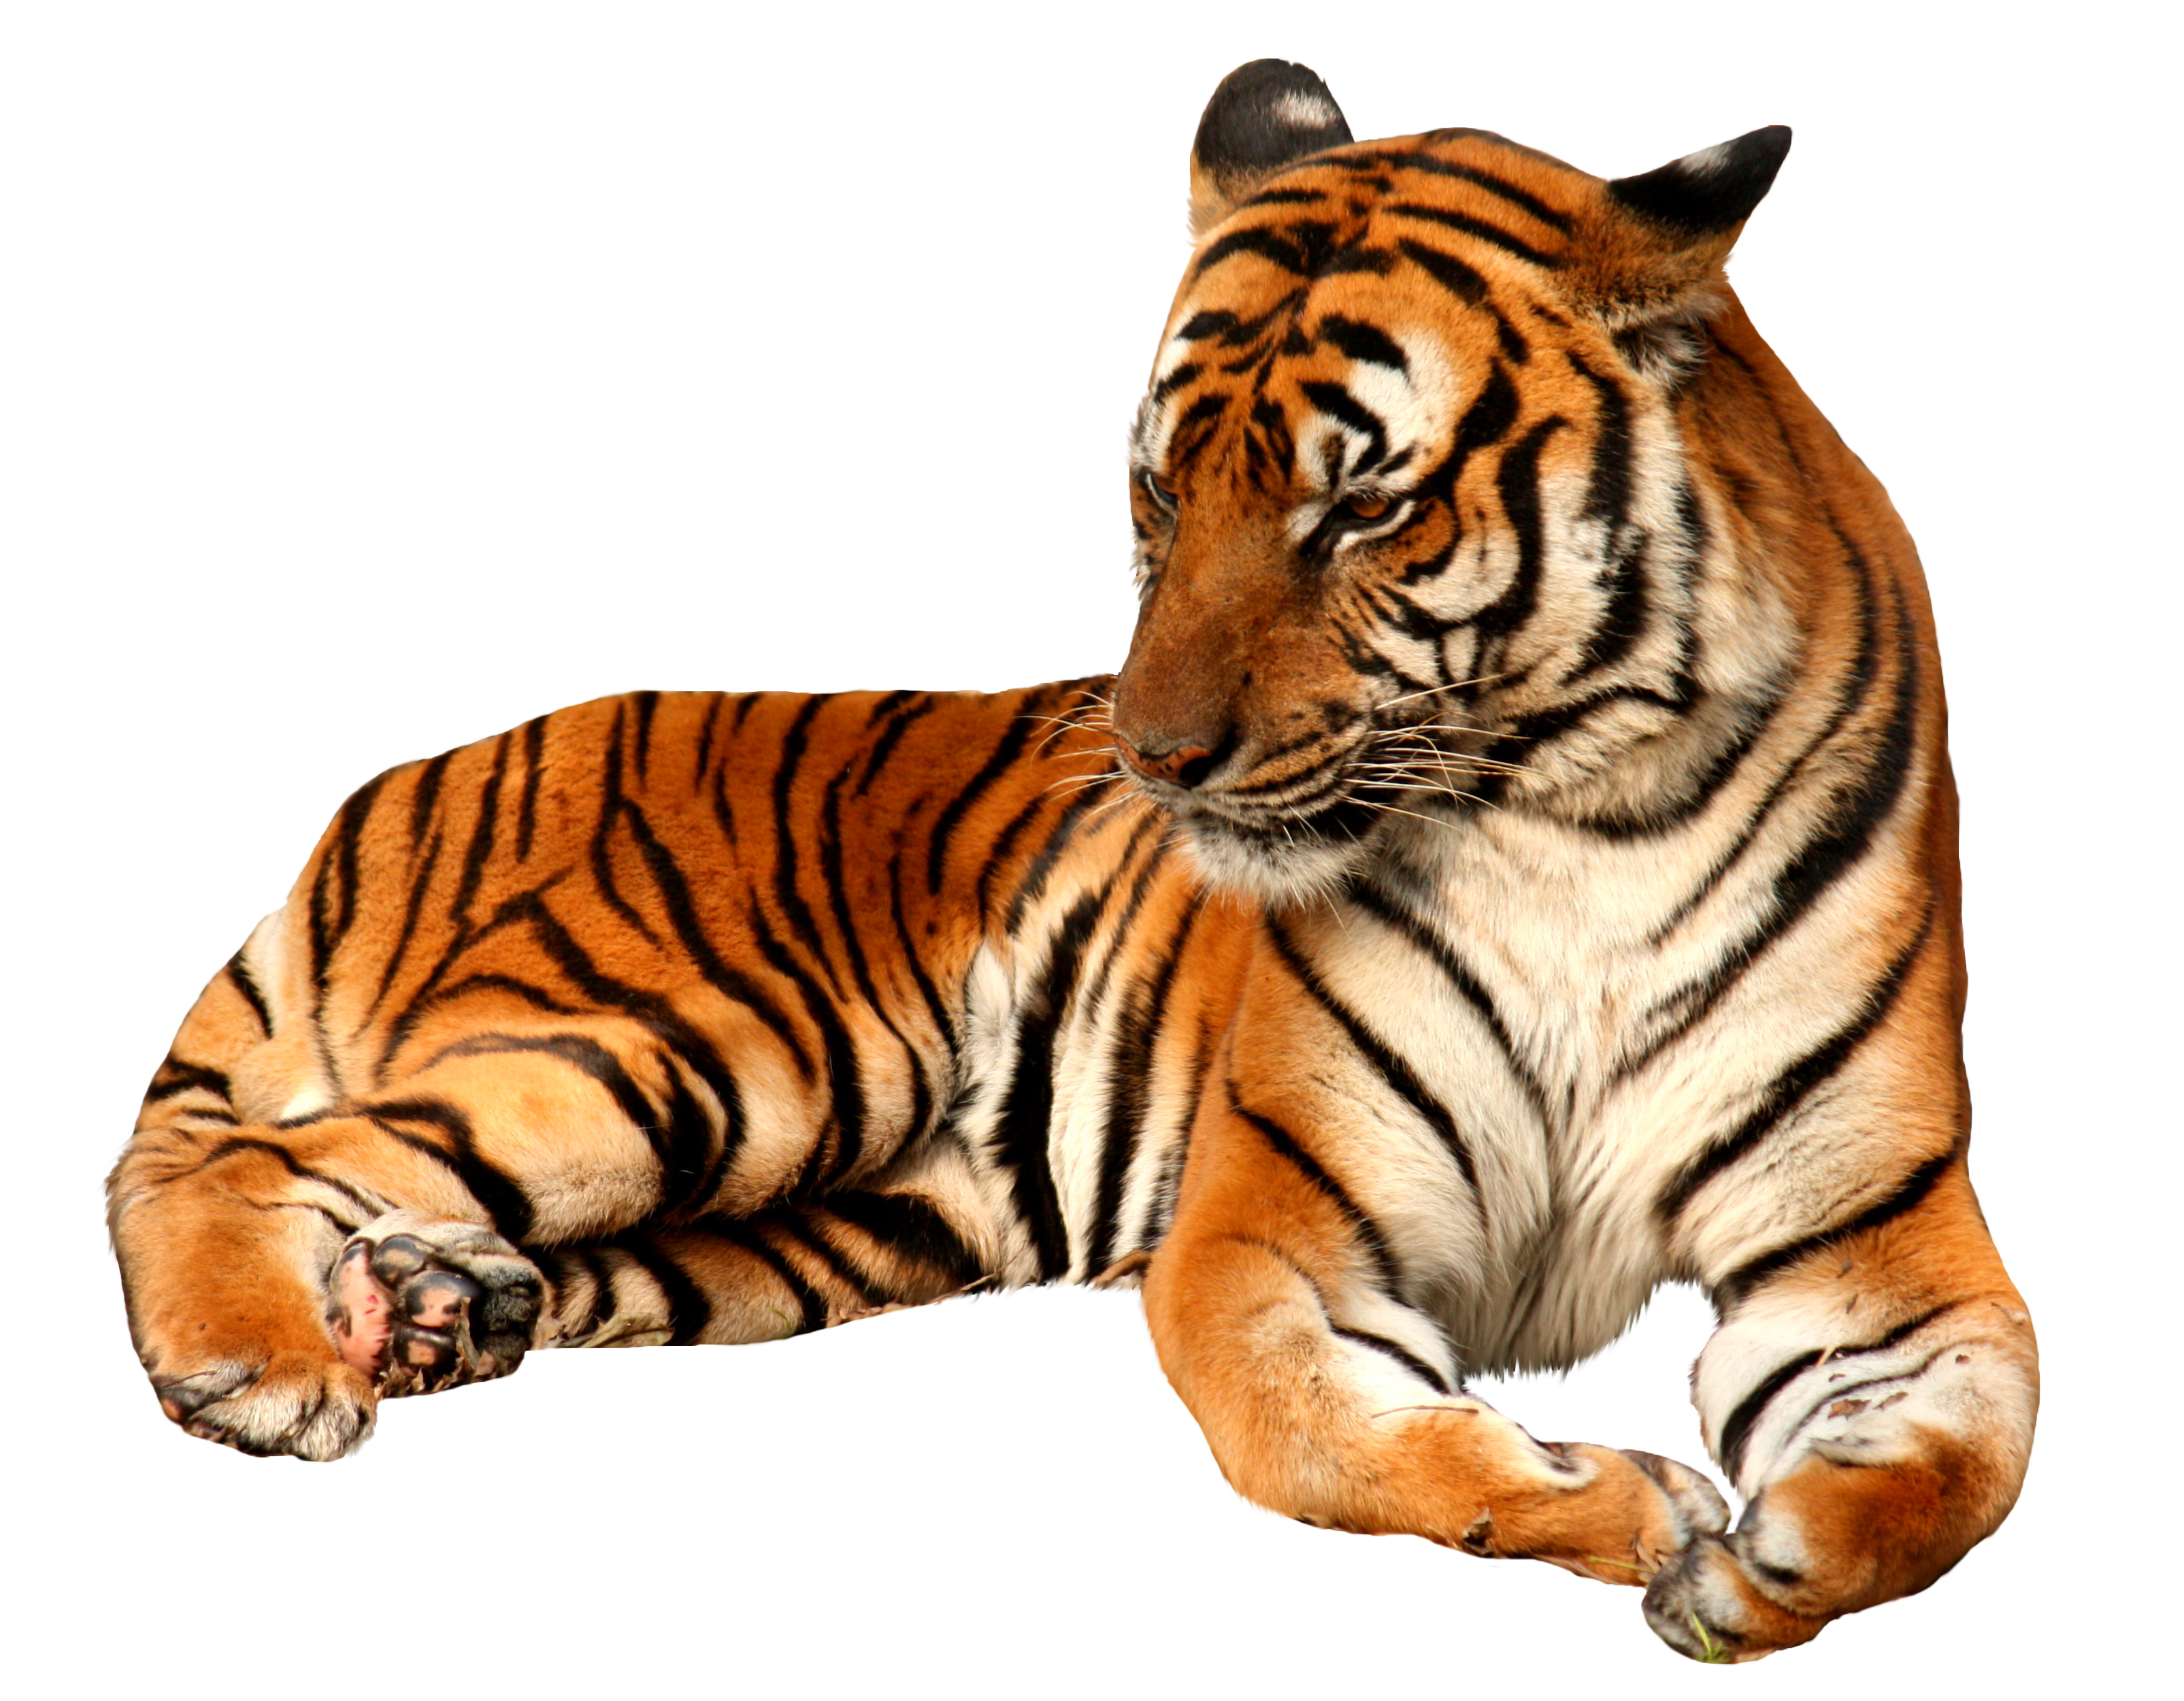 Sad animals png. Tiger image without background